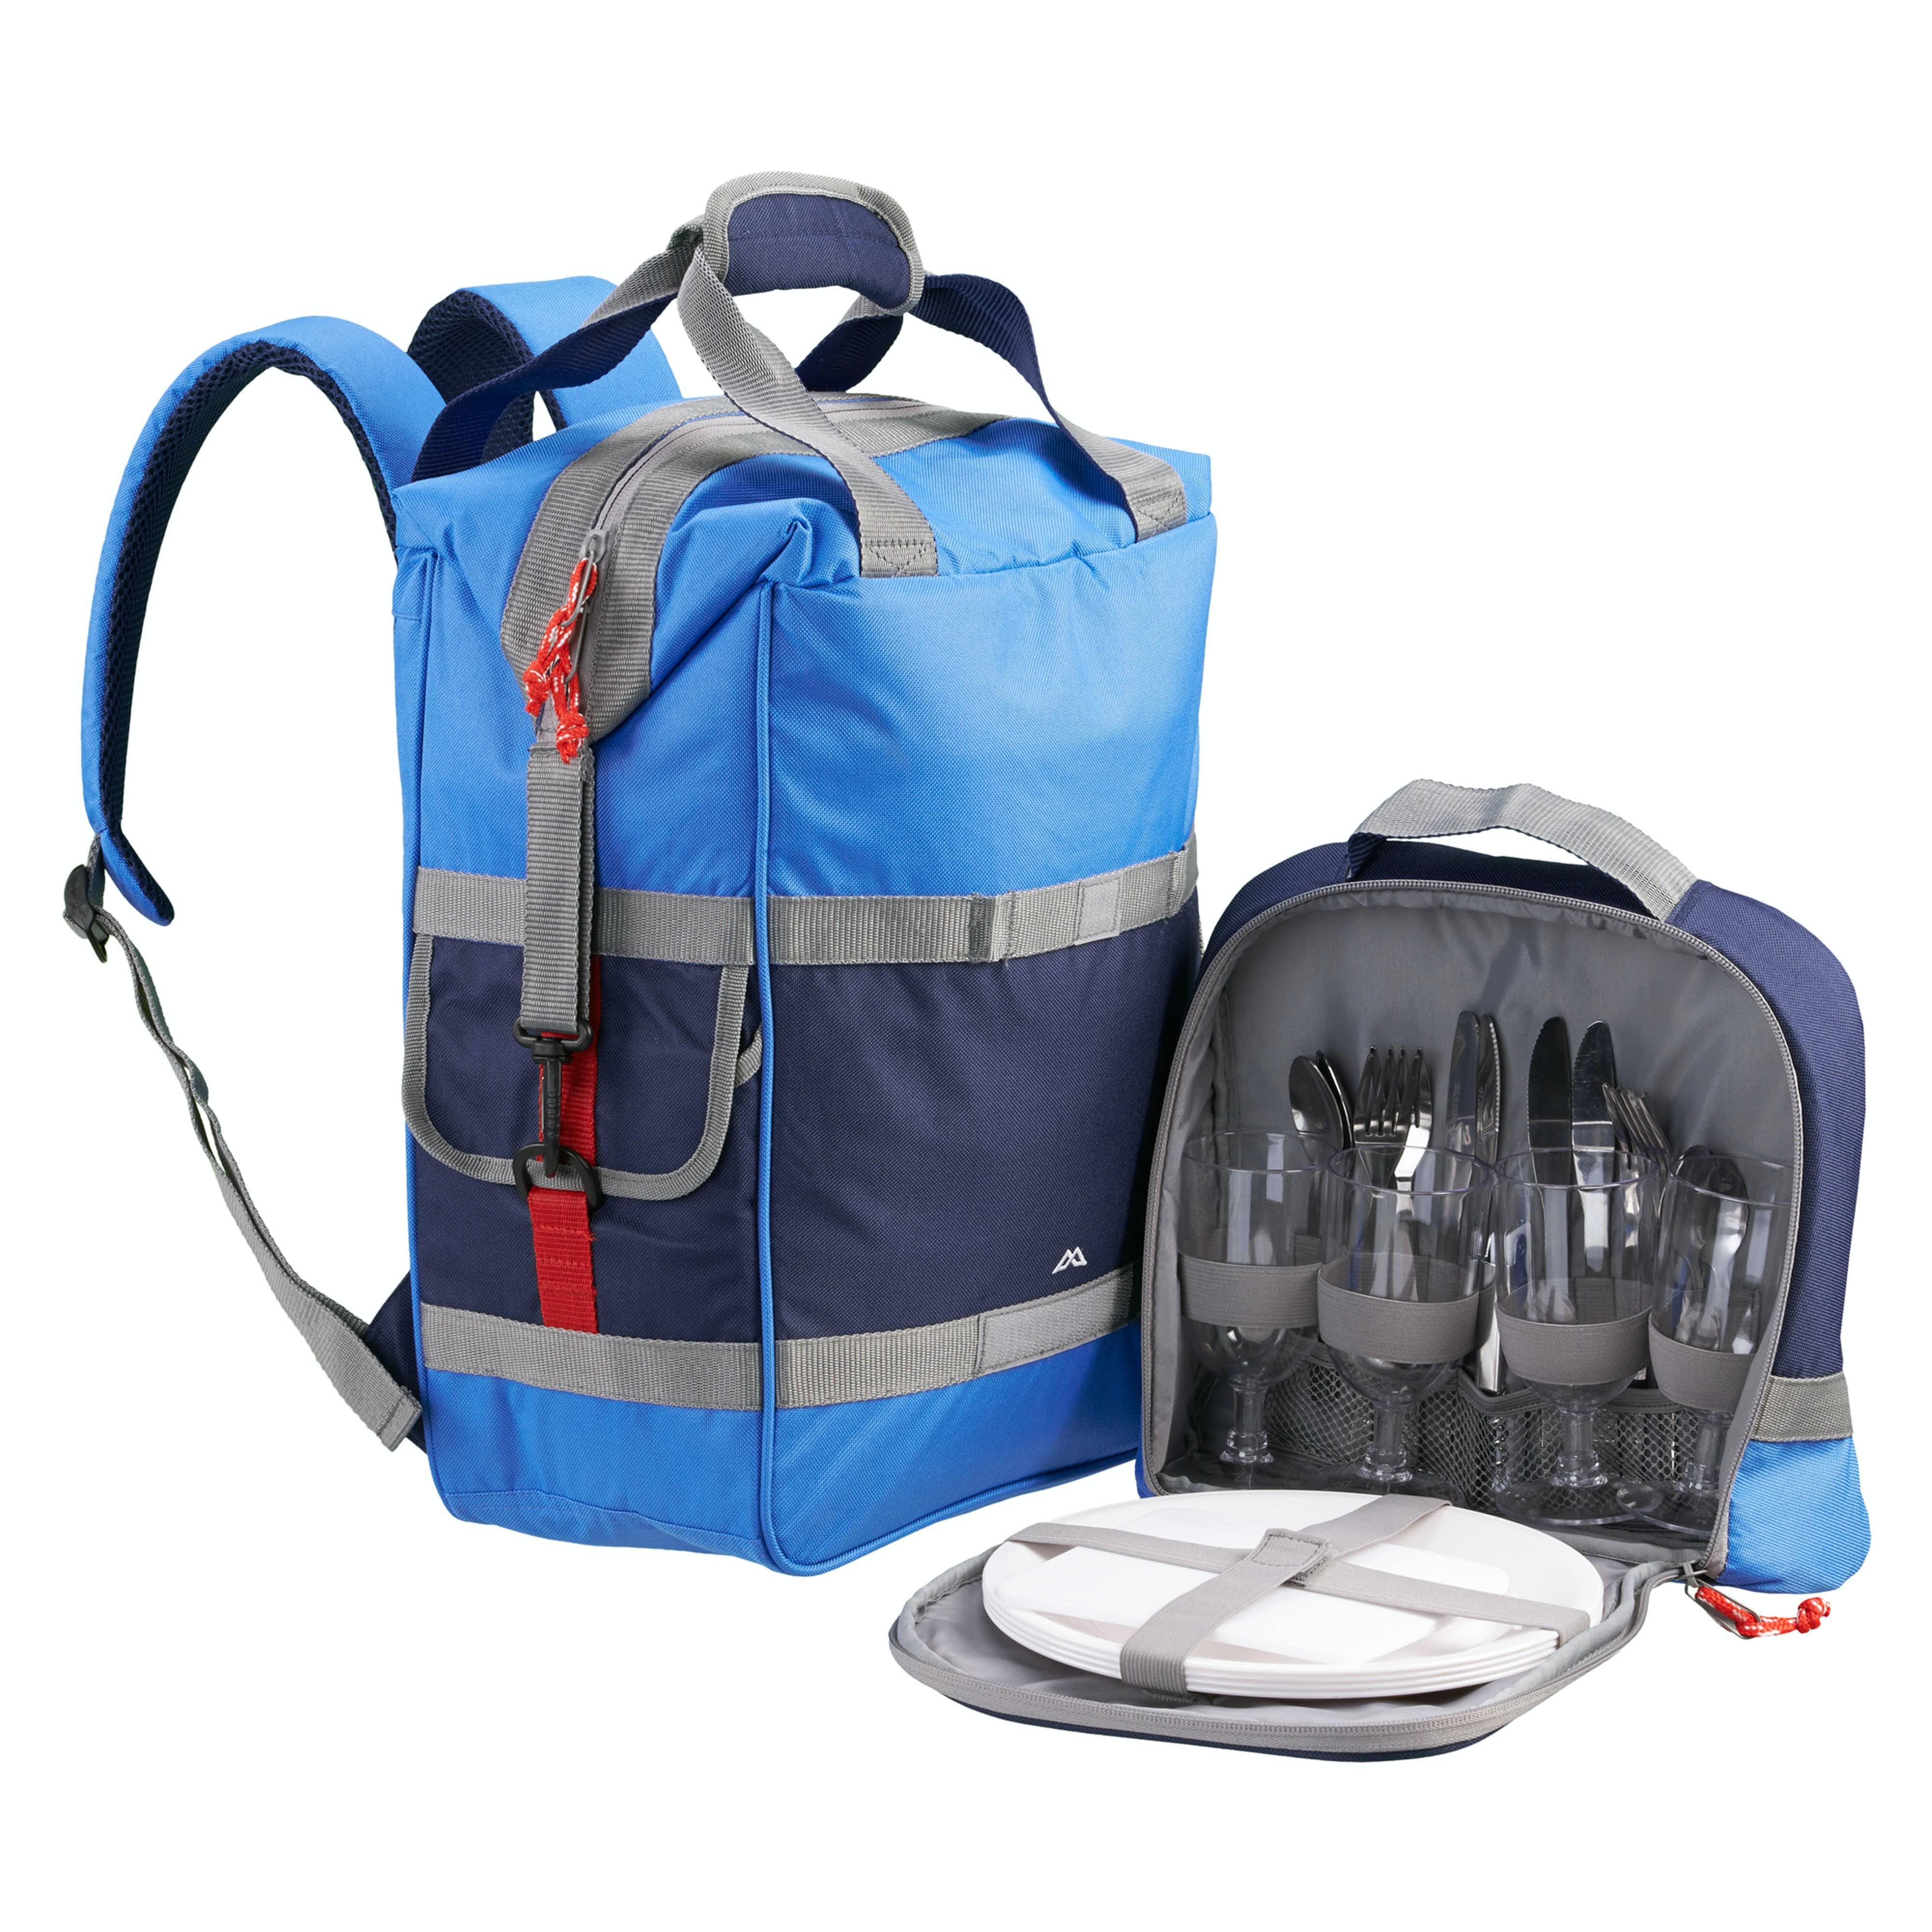 f9ffdb7220453 Picnic Cooler 18L Backpack - 4 Person